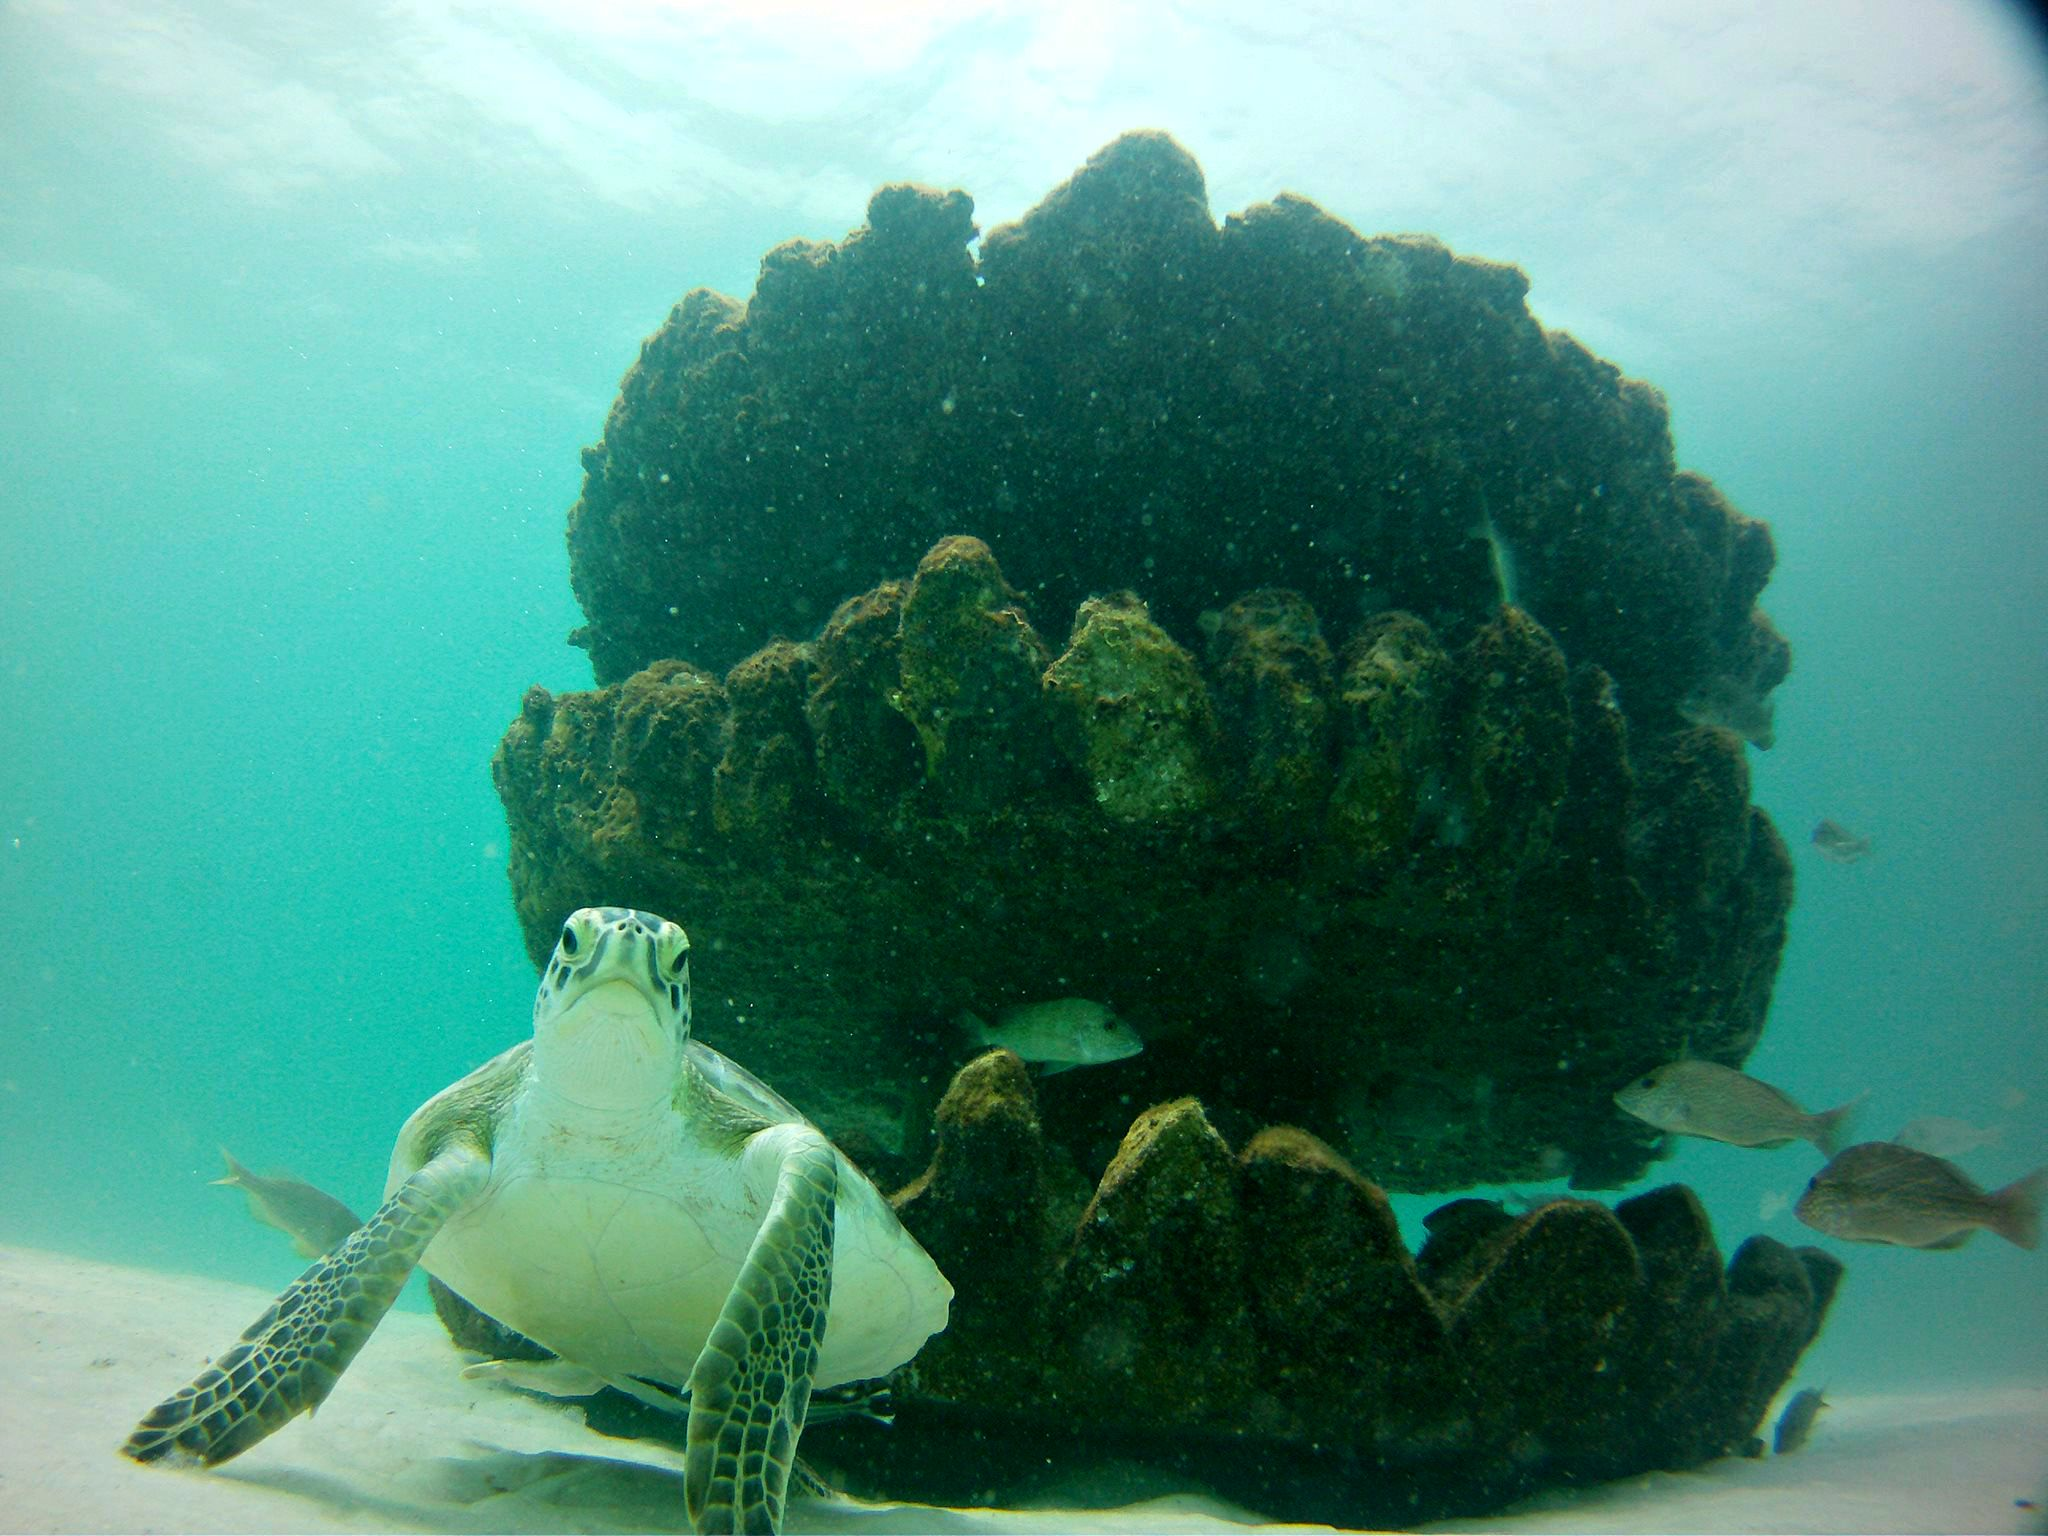 Giant sea turtle beside part of the artificial reef in the Gulf off the coast of Navarre Beach, Florida.